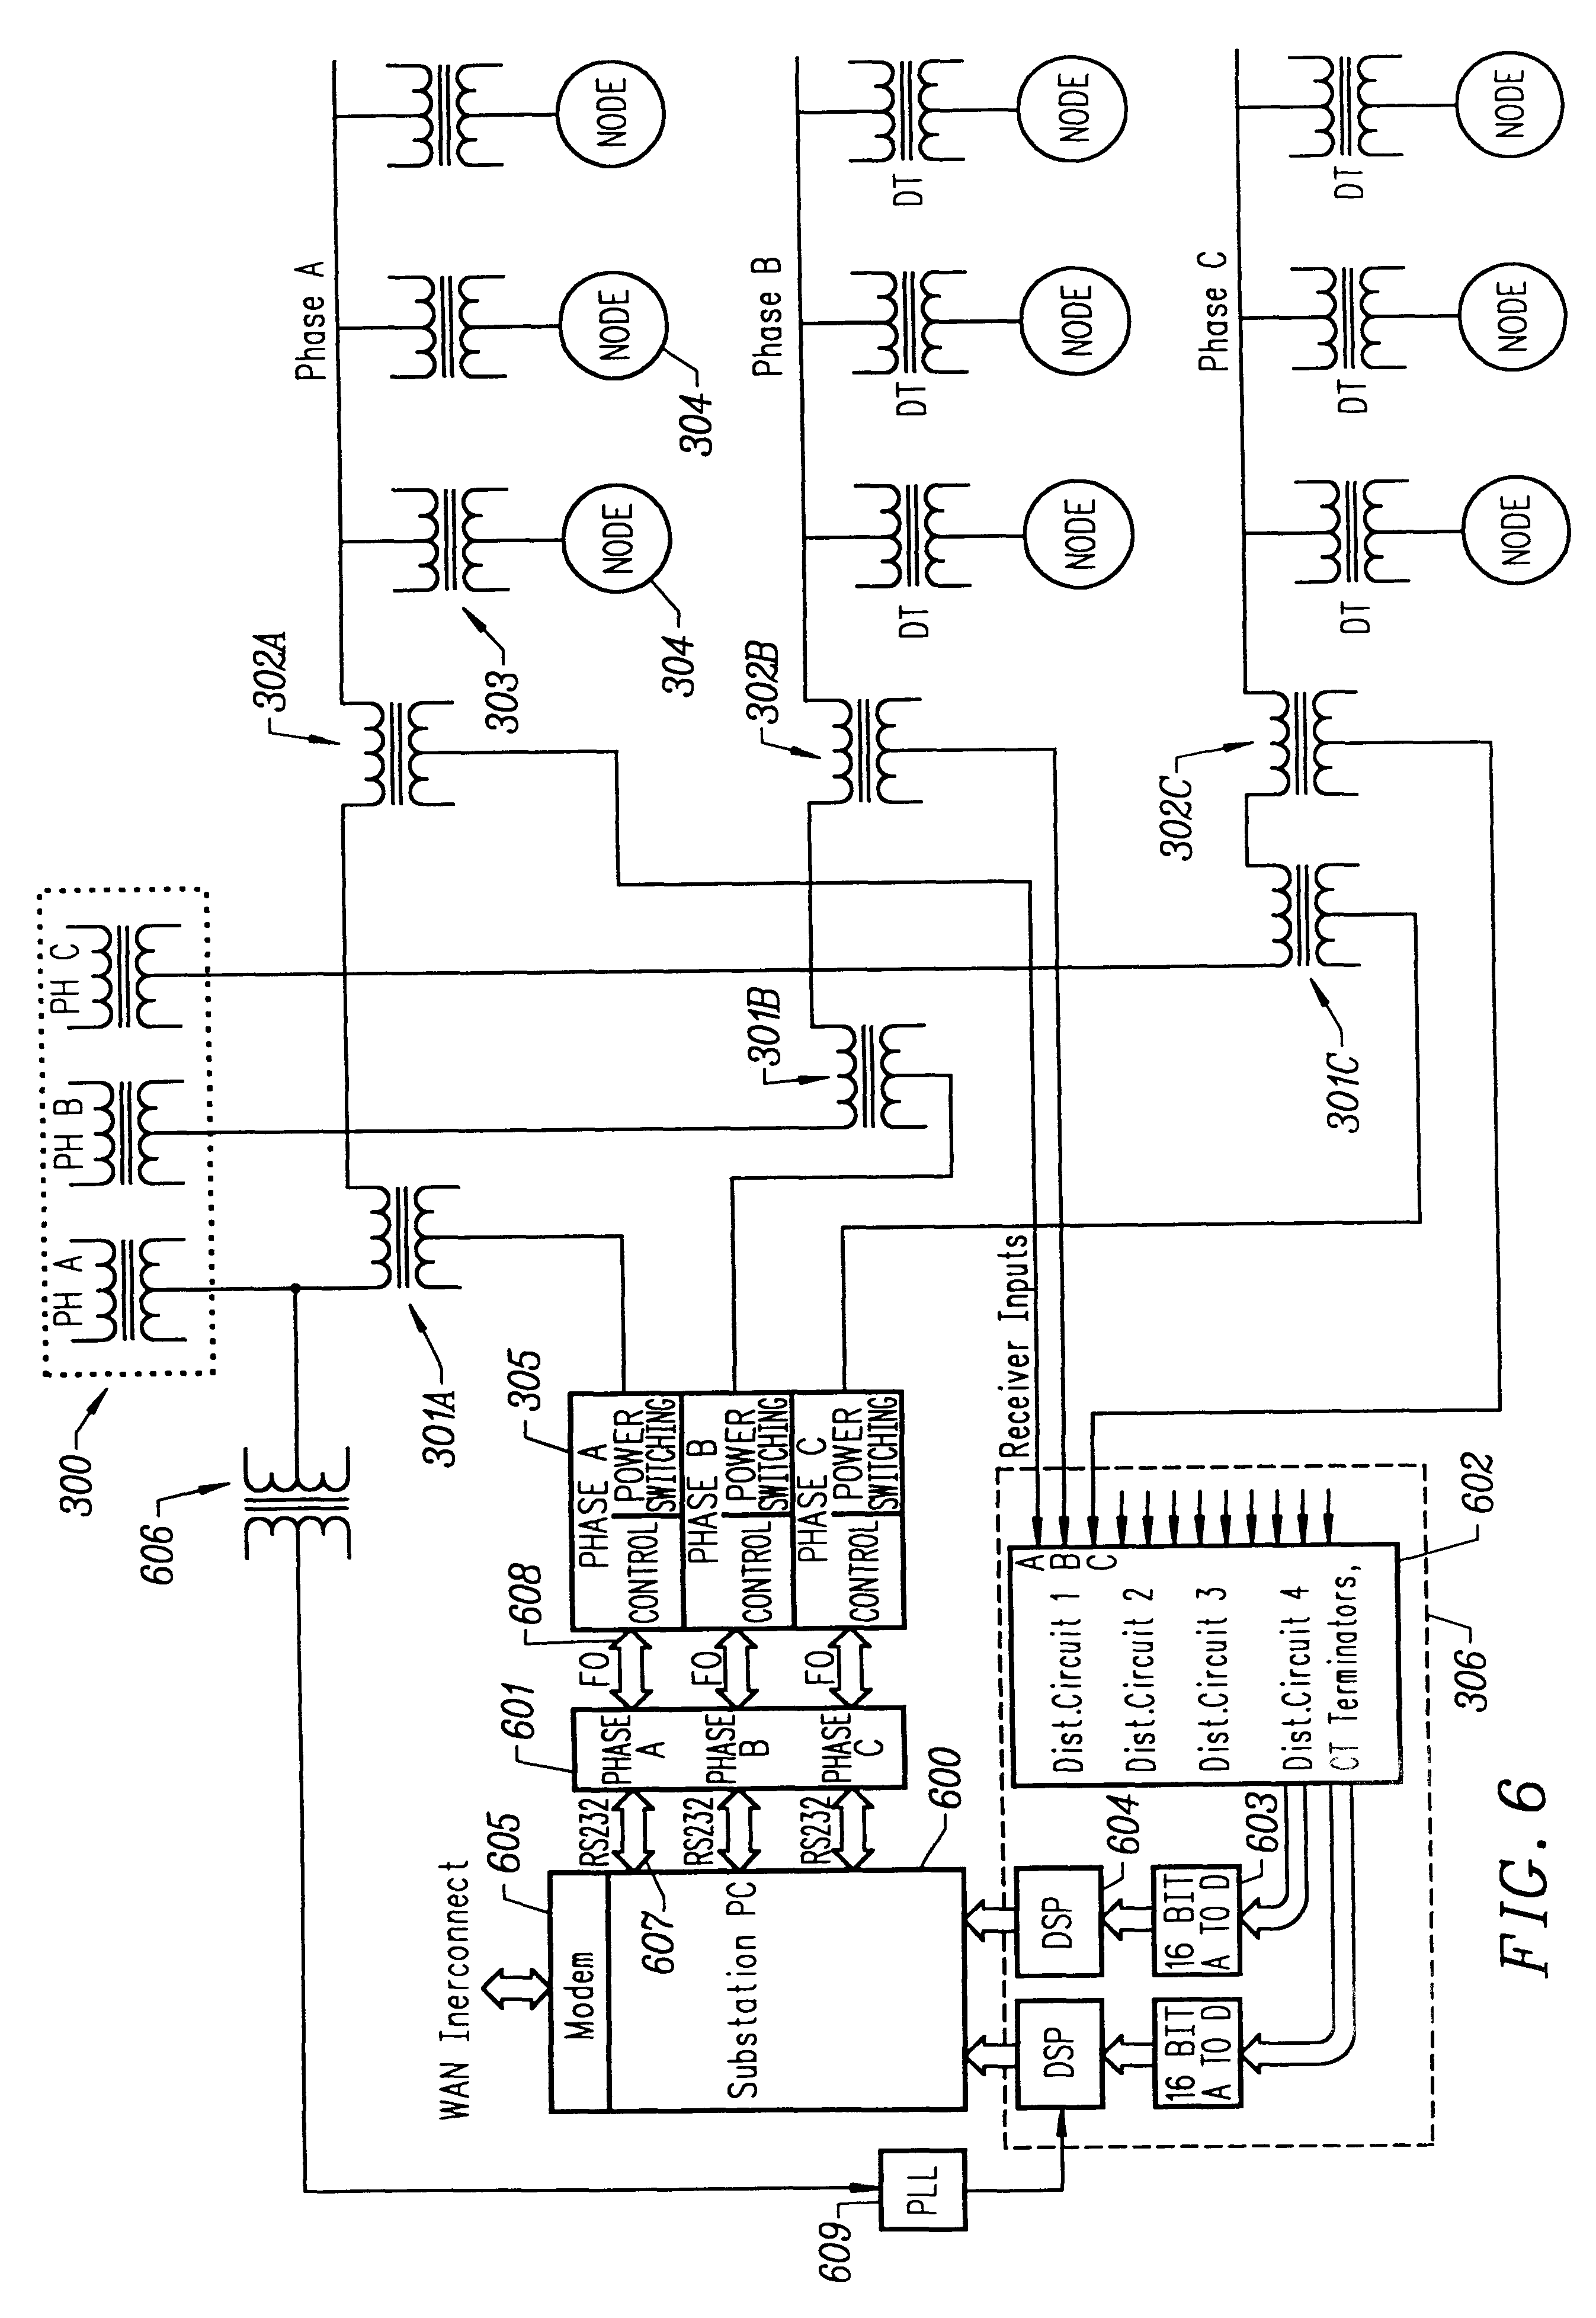 Patent Us 6278357 B1 Dsp Igbt Circuit Diagram Battery Charger